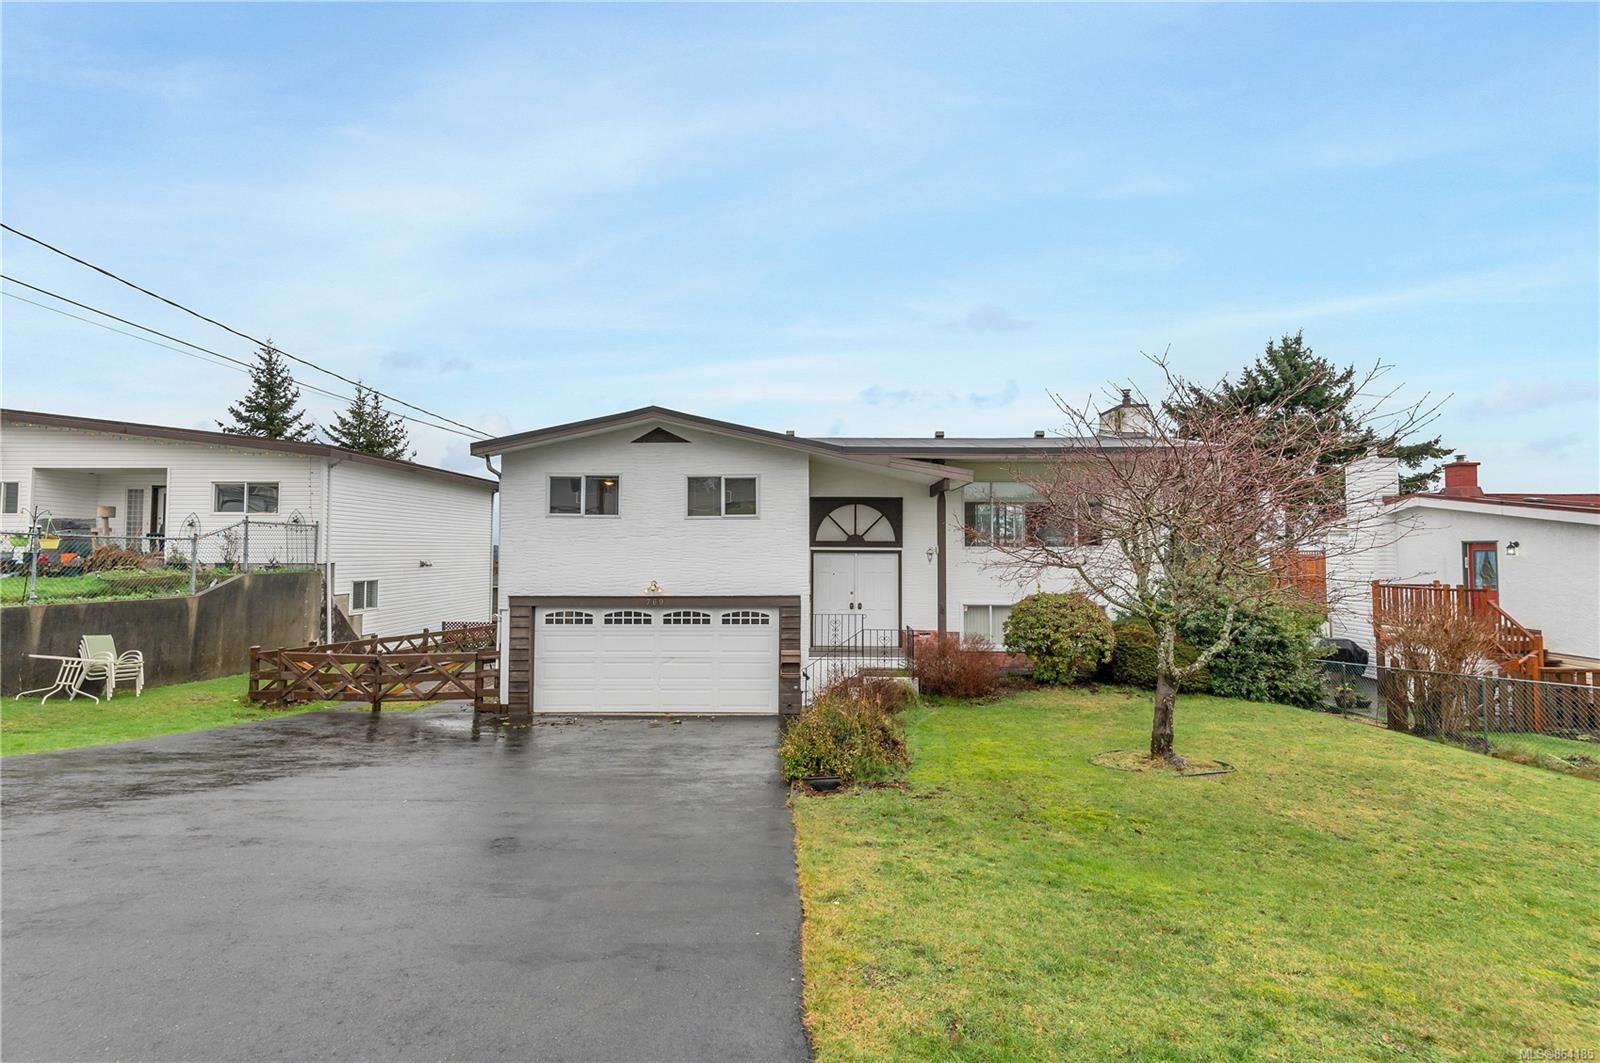 Main Photo: 769 Nancy Greene Dr in : CR Campbell River Central House for sale (Campbell River)  : MLS®# 864185